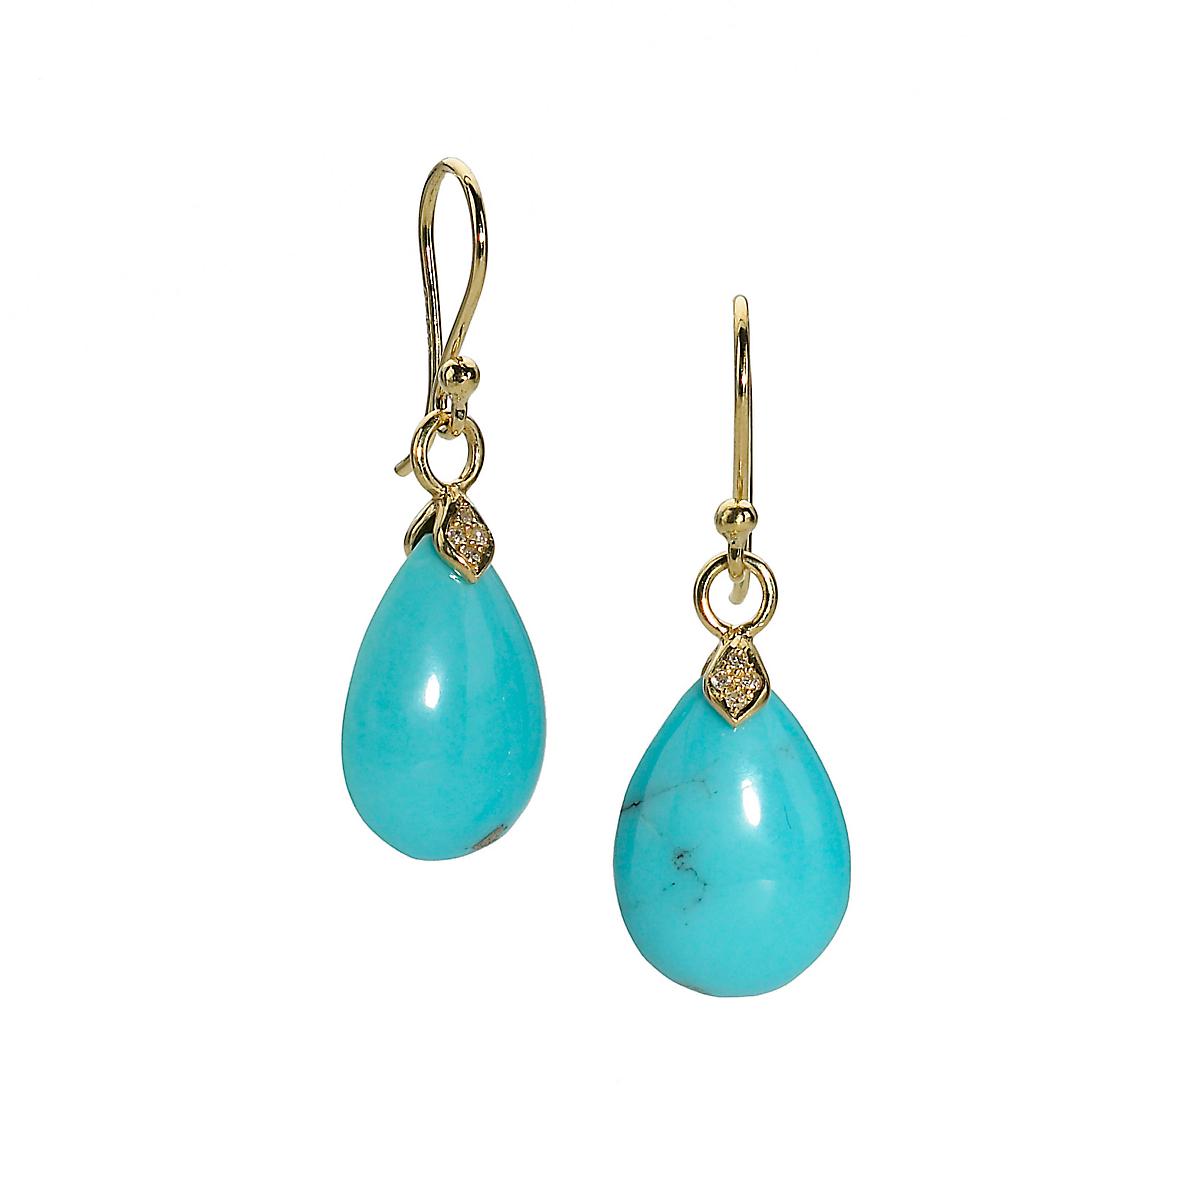 Elizabeth Showers Small Gold, Turquoise & Diamond Eliza Earrings